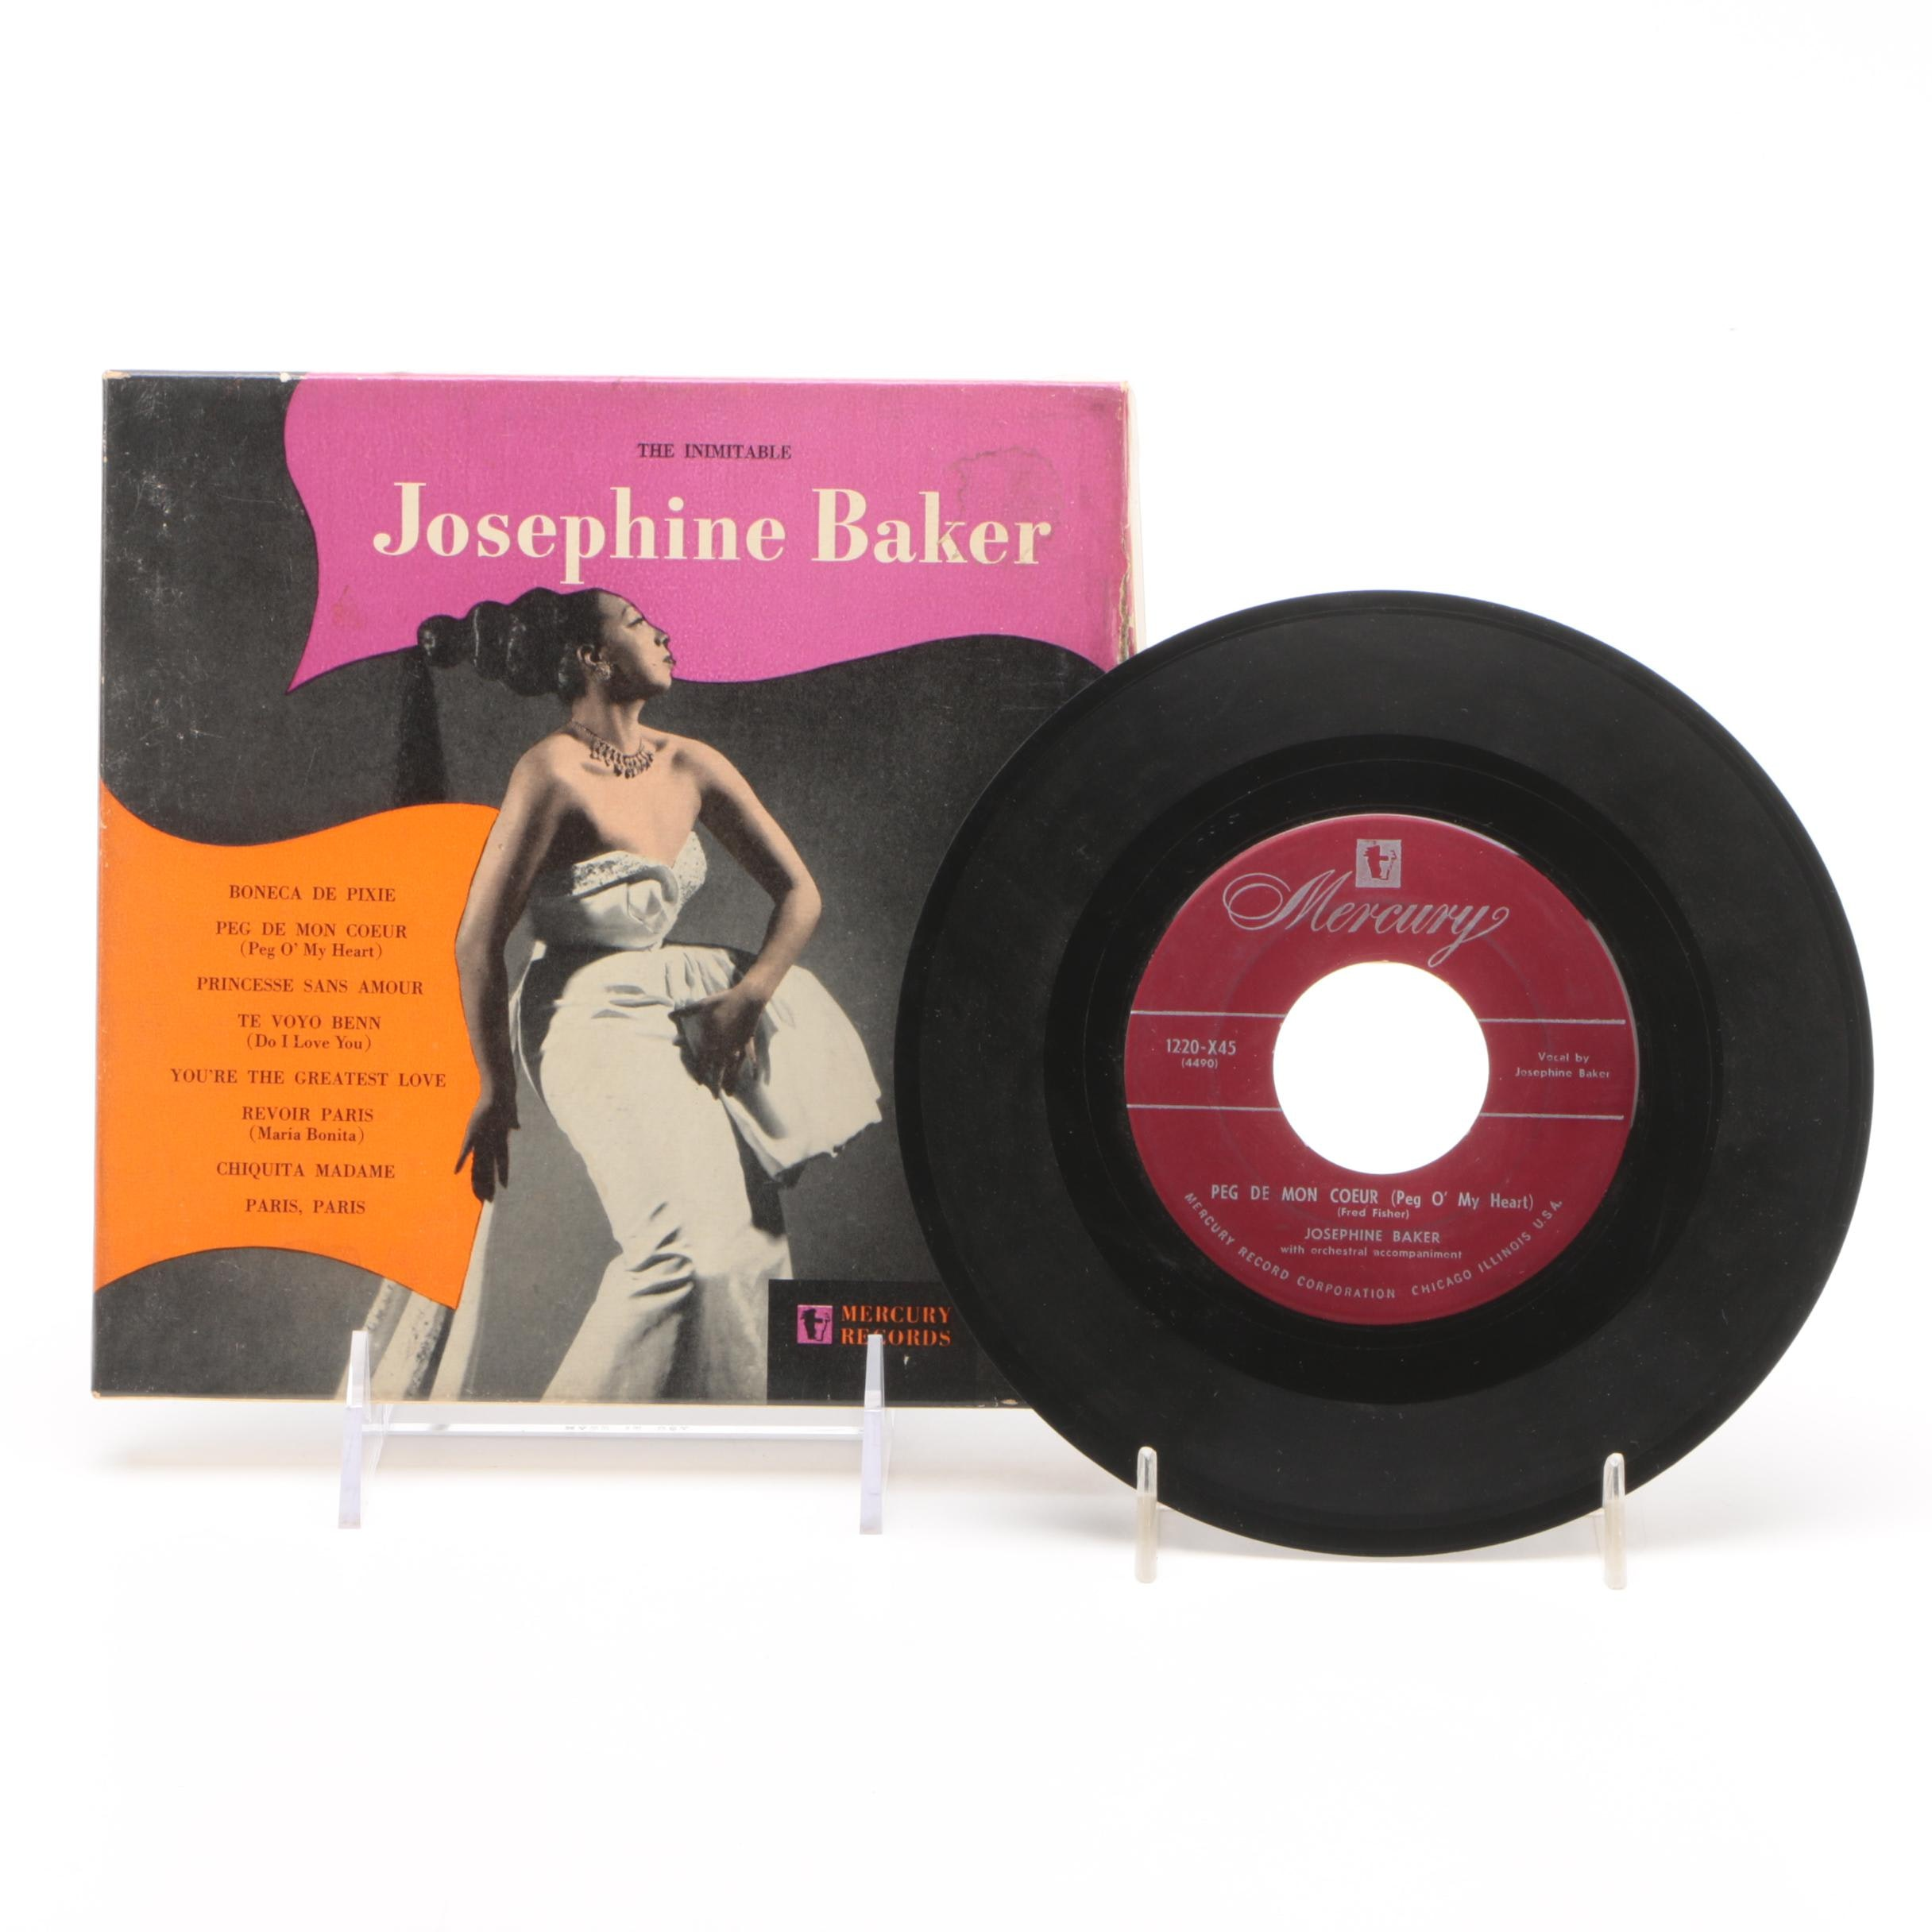 """Two Records From """"The Inimitable Josephine Baker"""" 45 RPM Box Set"""